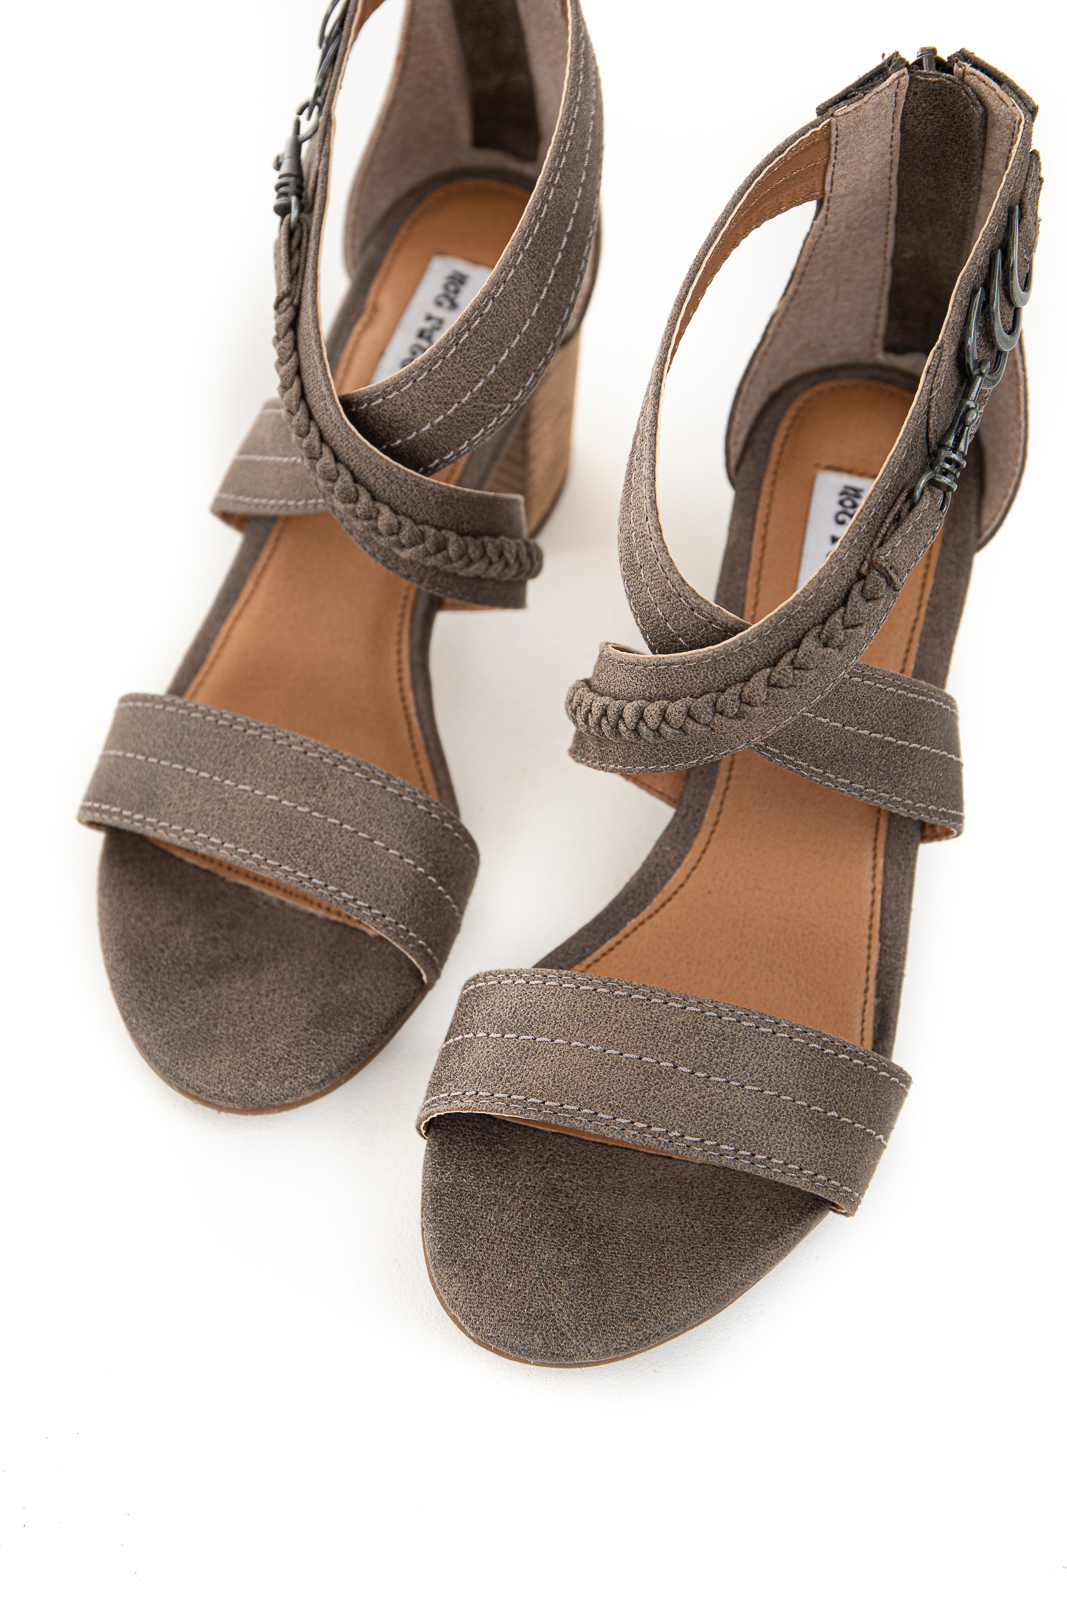 Cocoa Criss Cross Strap Block Heel with Braided Detail